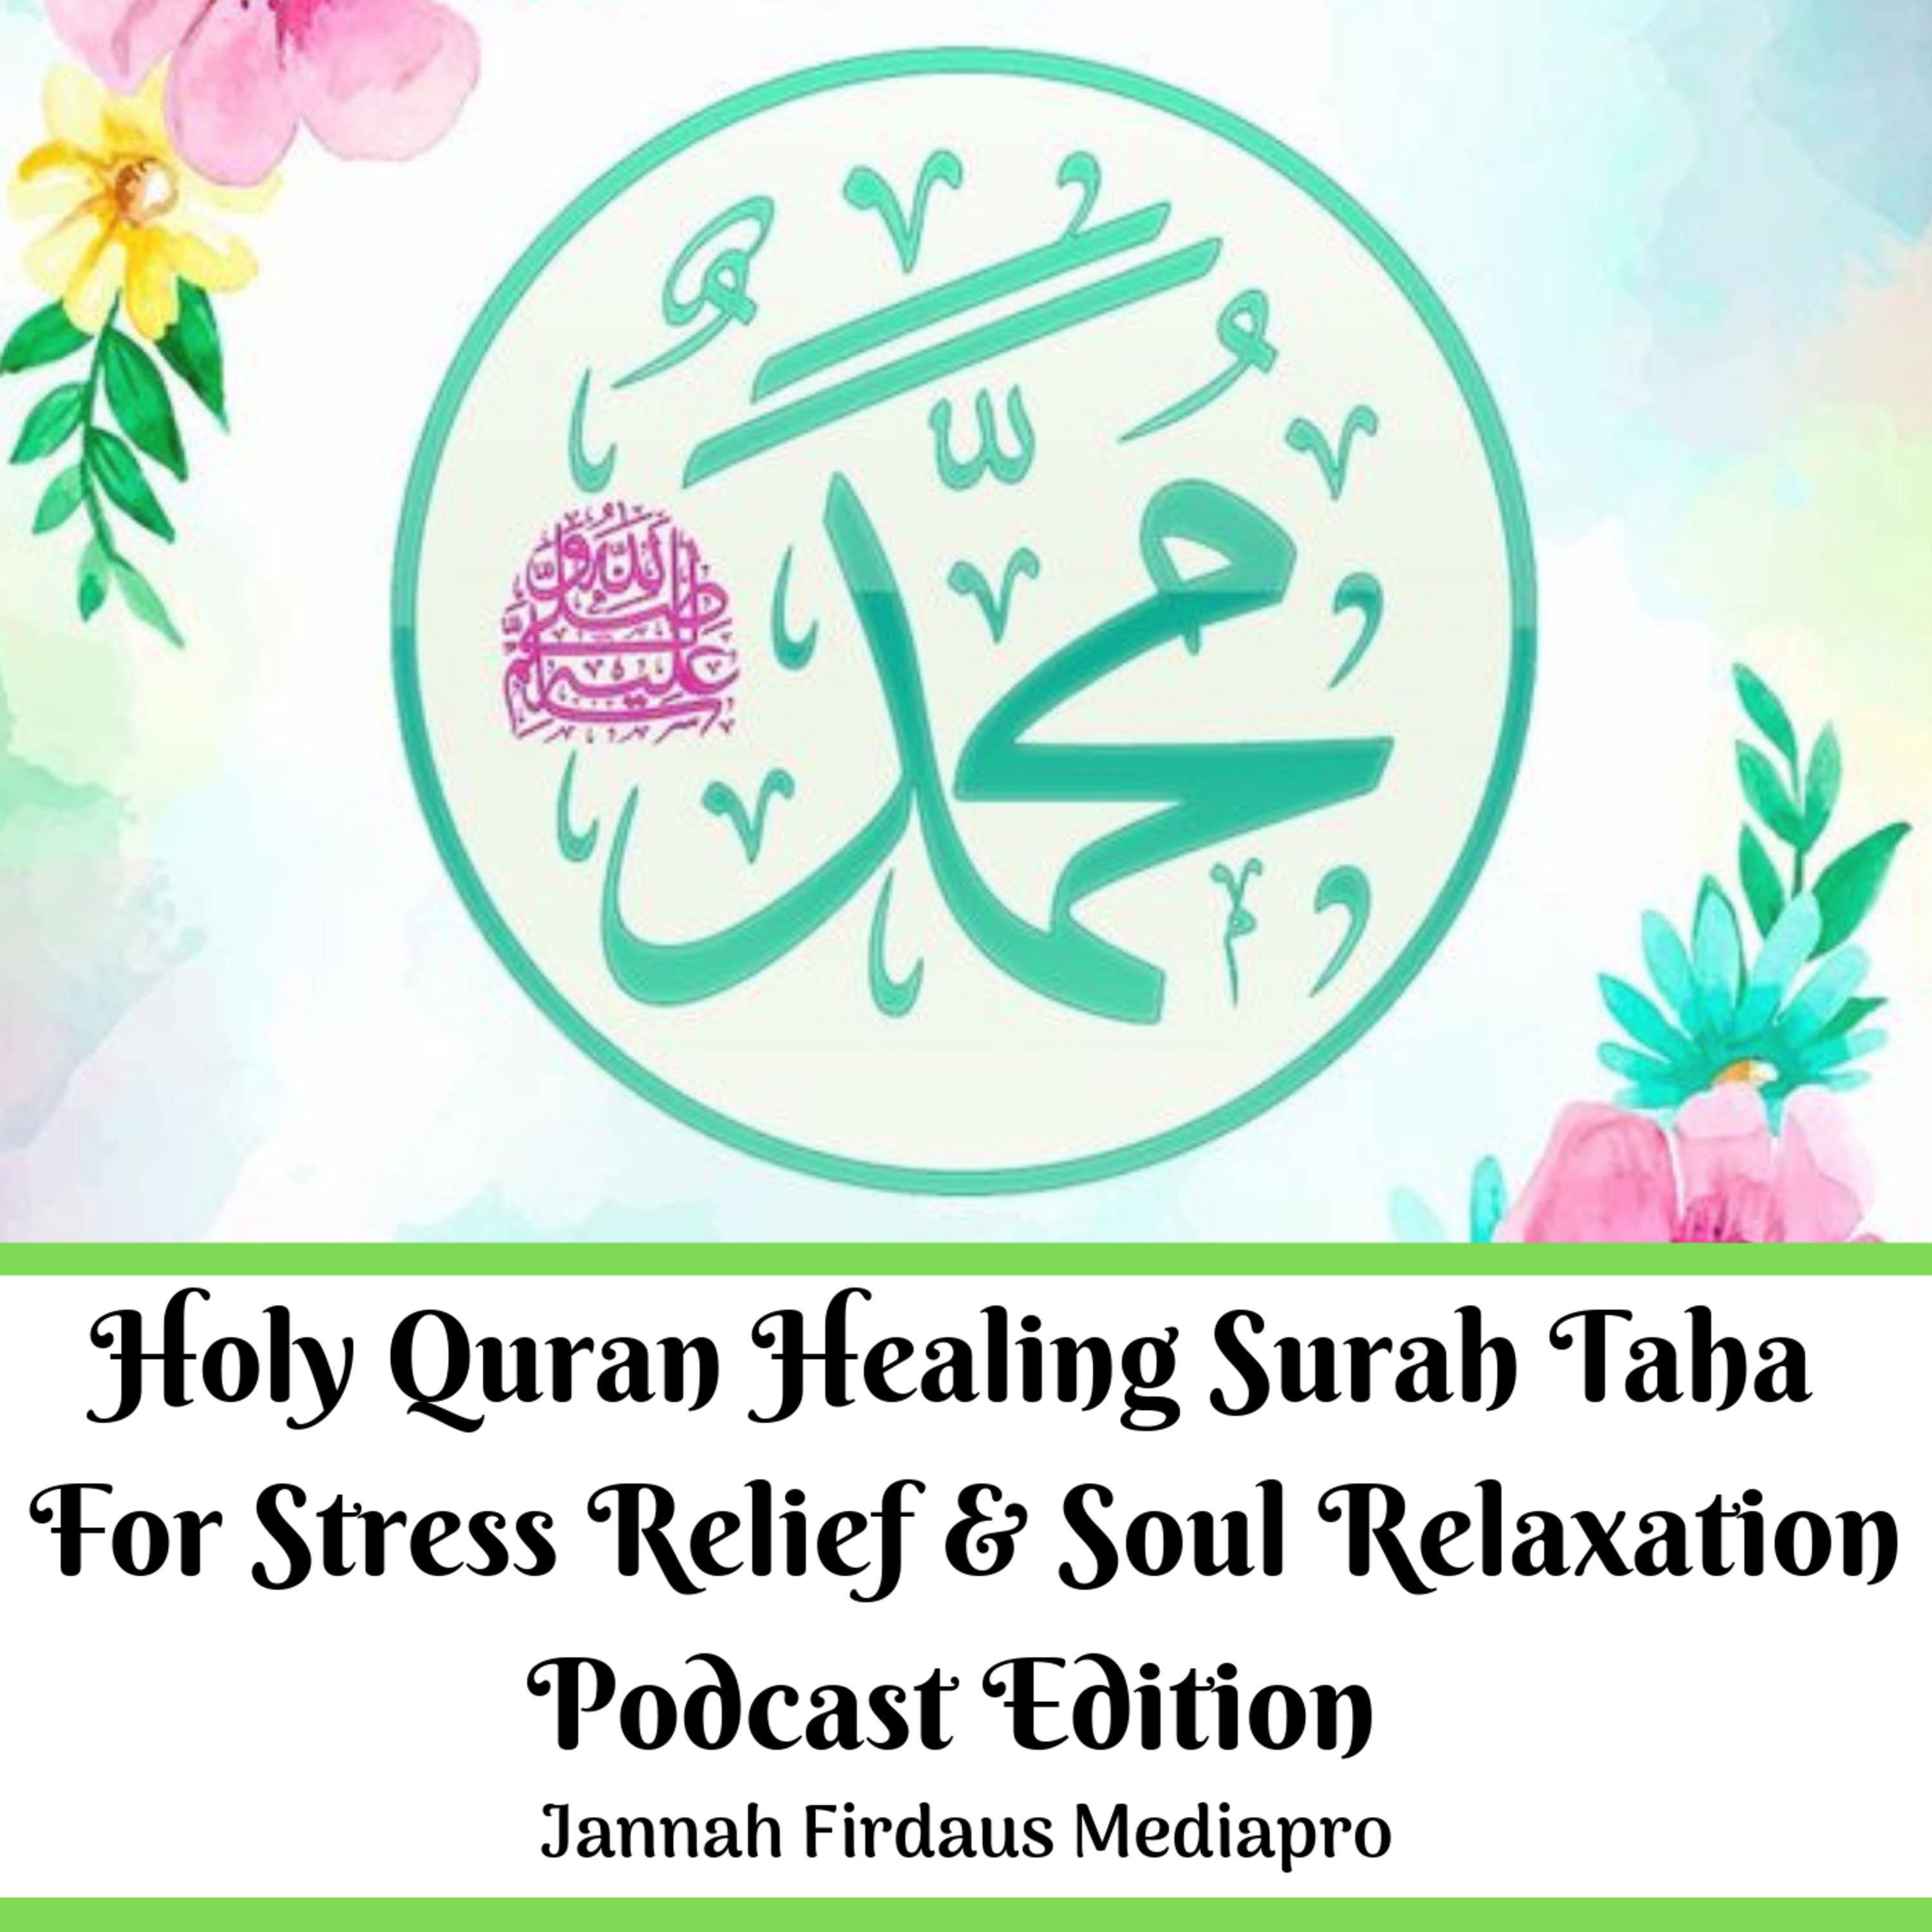 Holy Quran Healing Surah Taha For Stress Relief & Soul Relaxation Podcast Edition